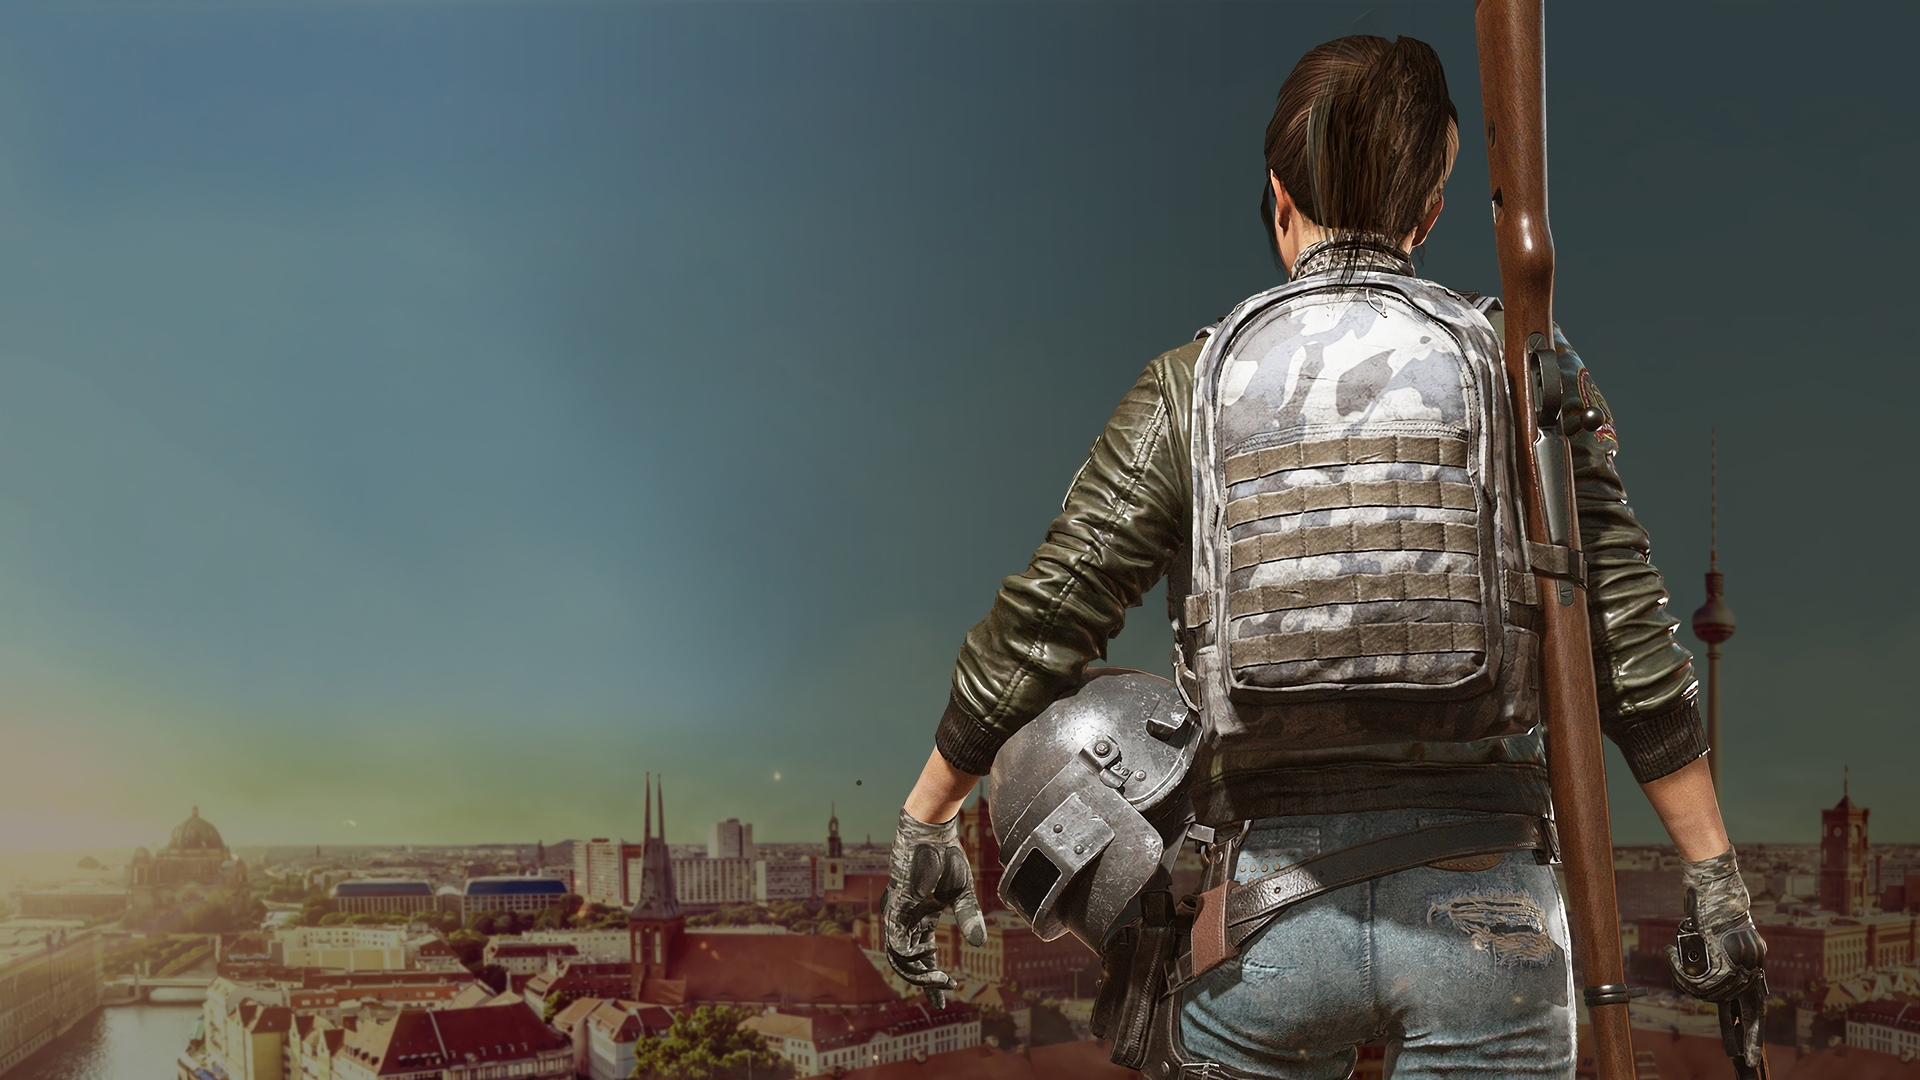 Pubg Wallpaper Hd Pic: 1920x1080 Game Girl Pubg 4k Laptop Full HD 1080P HD 4k